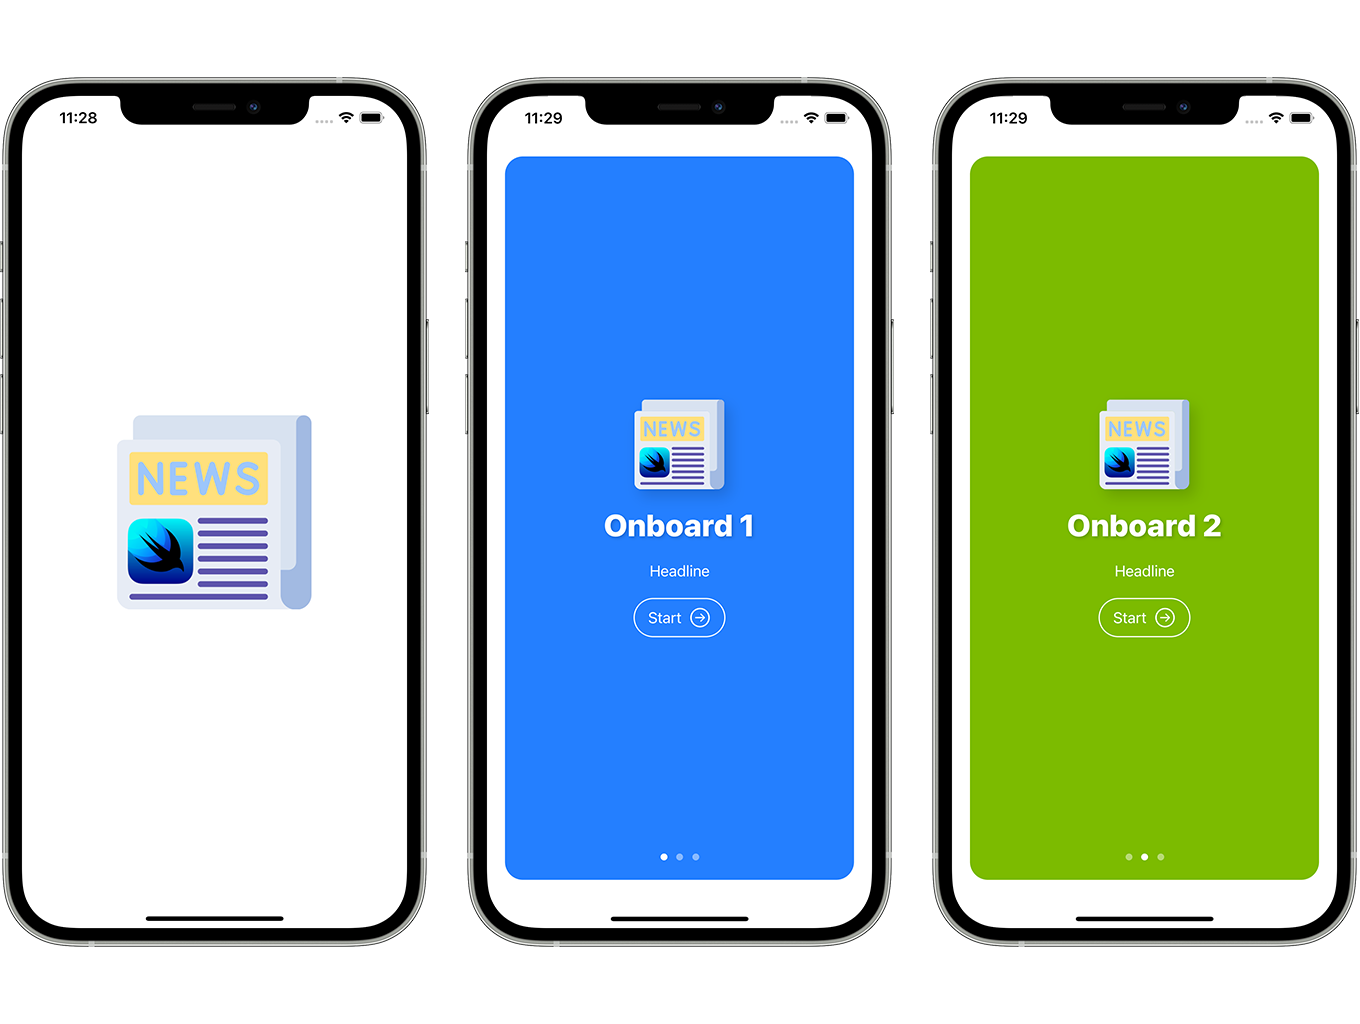 Blog and News SwiftUI iOS App for WordPress Site with AdMob, Firebase Push Notification and Widget - 2